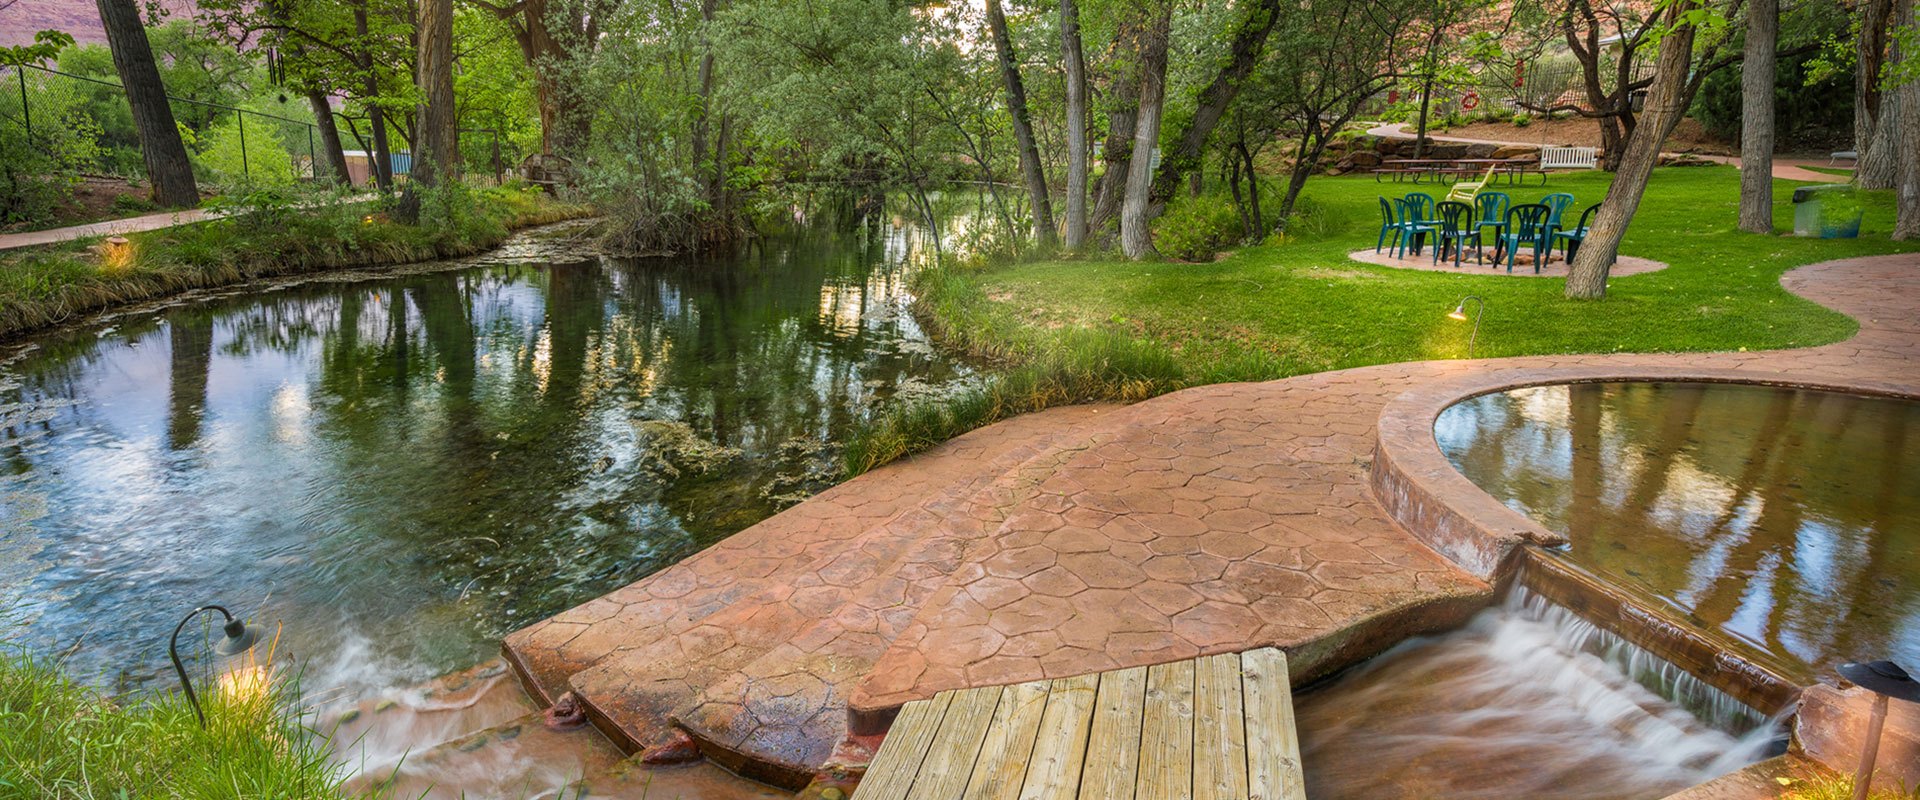 Two males on bicycles are riding on a bike path alongside the lush greenery of trees and vegetation, large red brown boulders and the large rectangular Moab Springs Ranch sign.